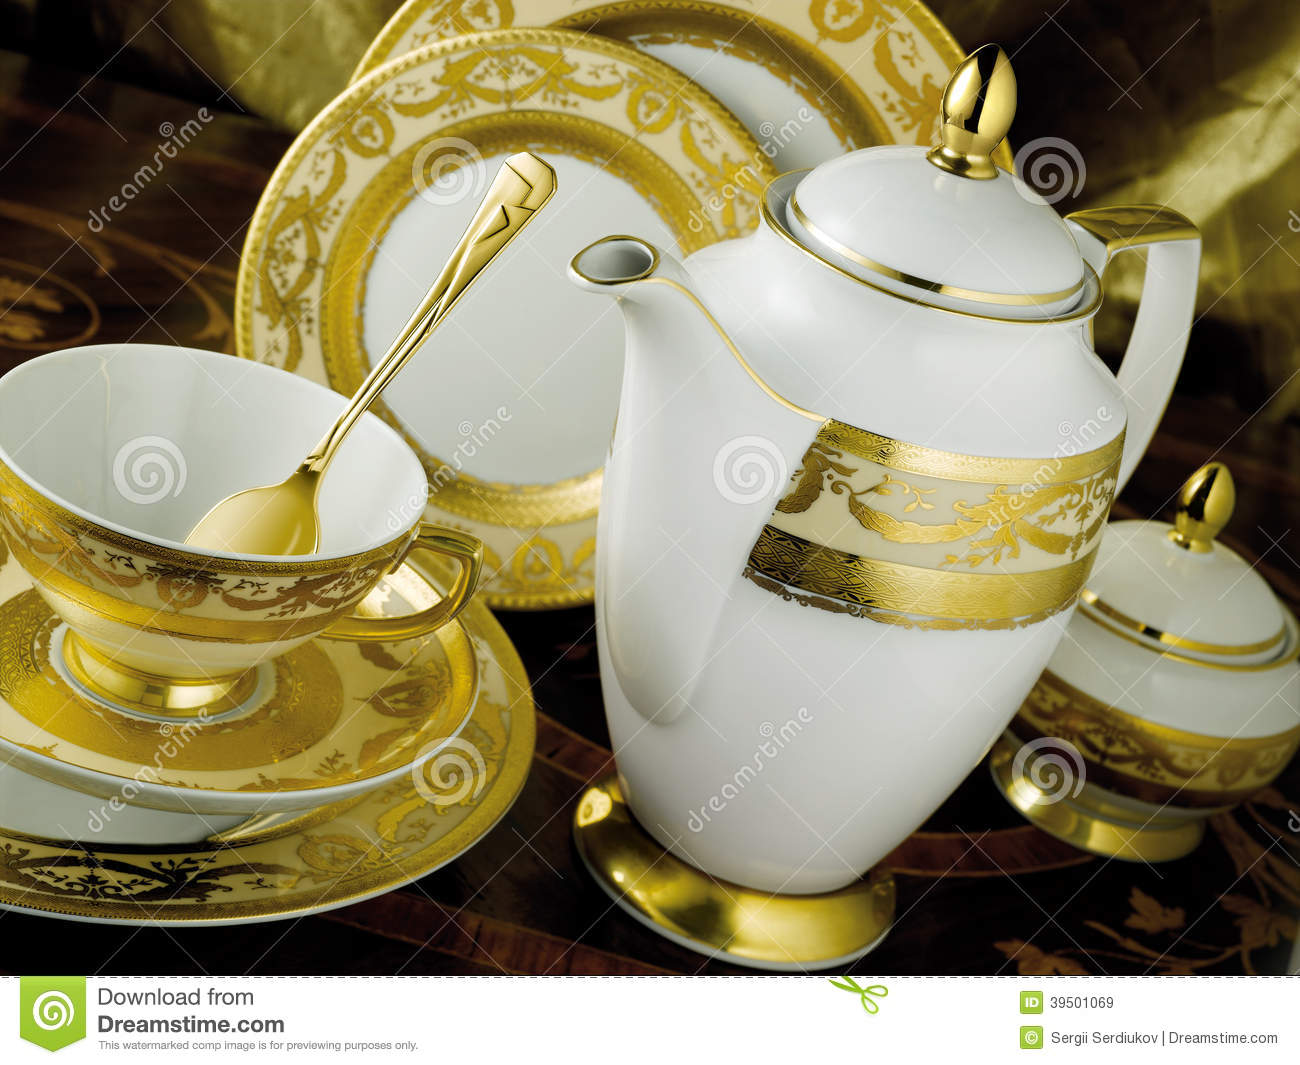 White tableware set with gold trim